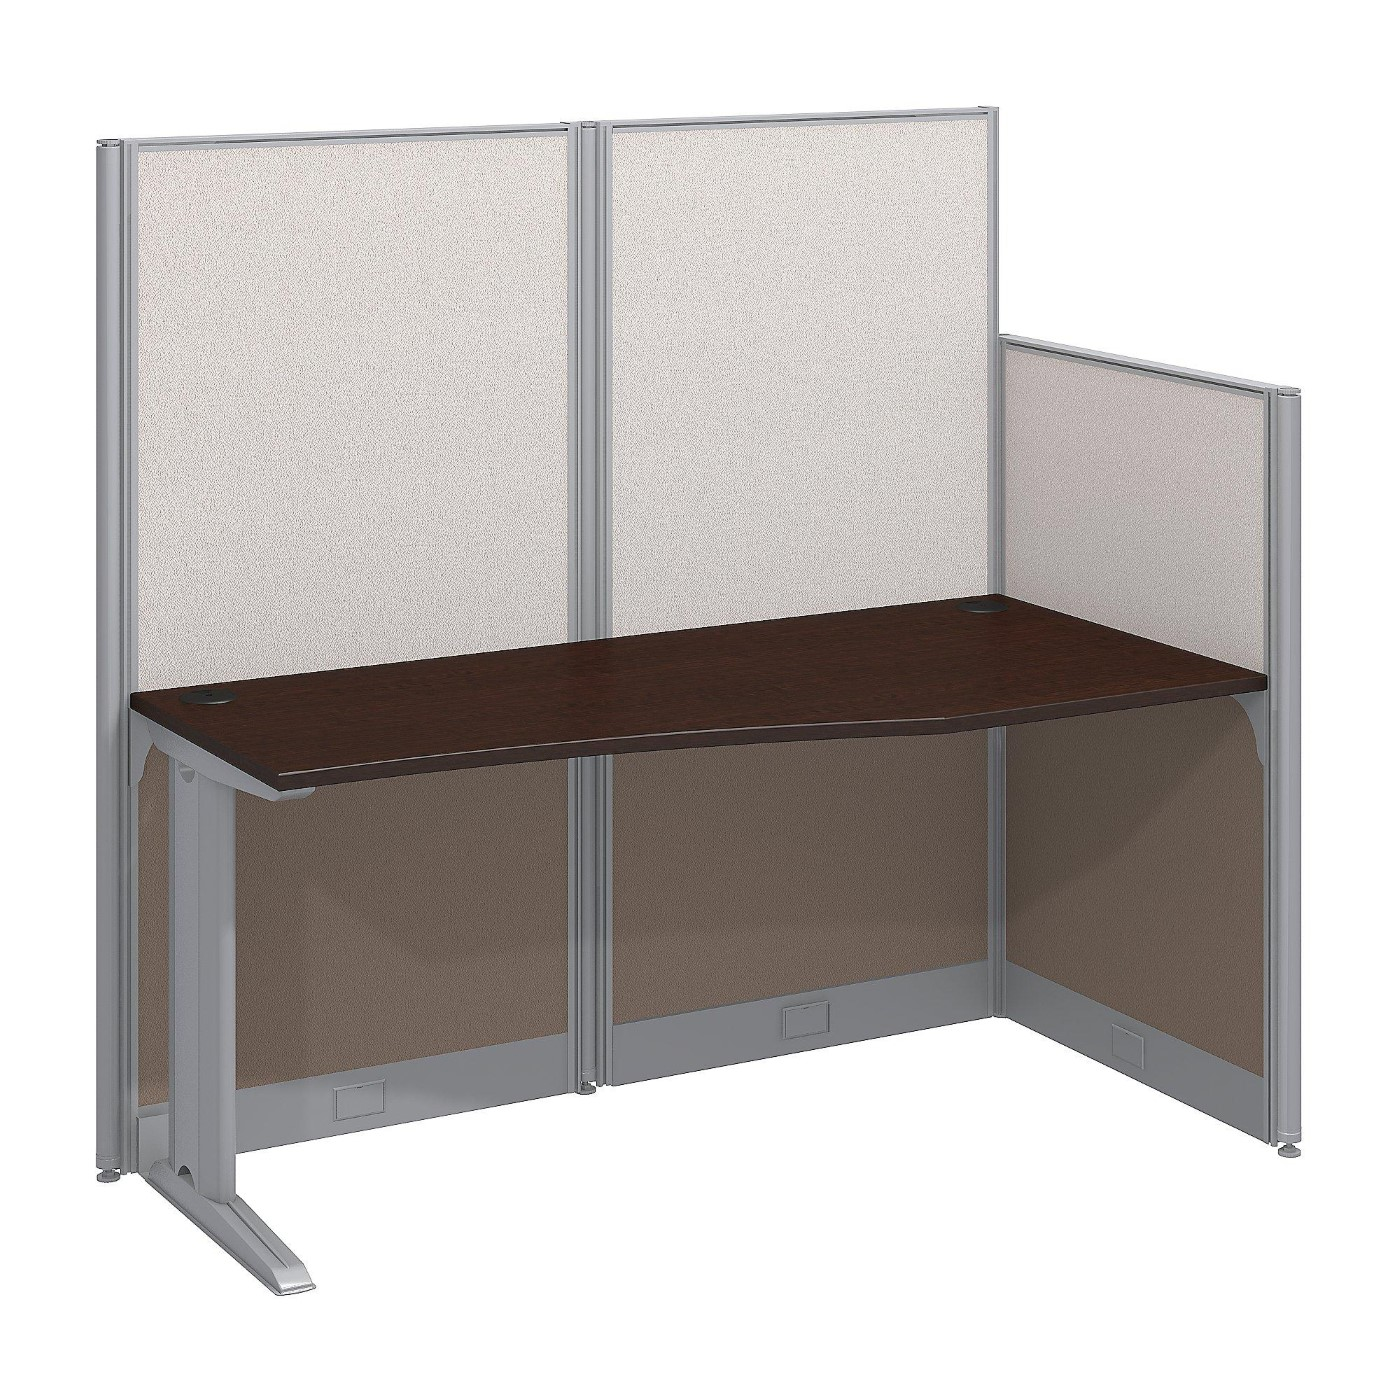 <font color=#c60><b>BUSH BUSINESS FURNITURE OFFICE IN AN HOUR 65W X 33D CUBICLE WORKSTATION. FREE SHIPPING</font></b>